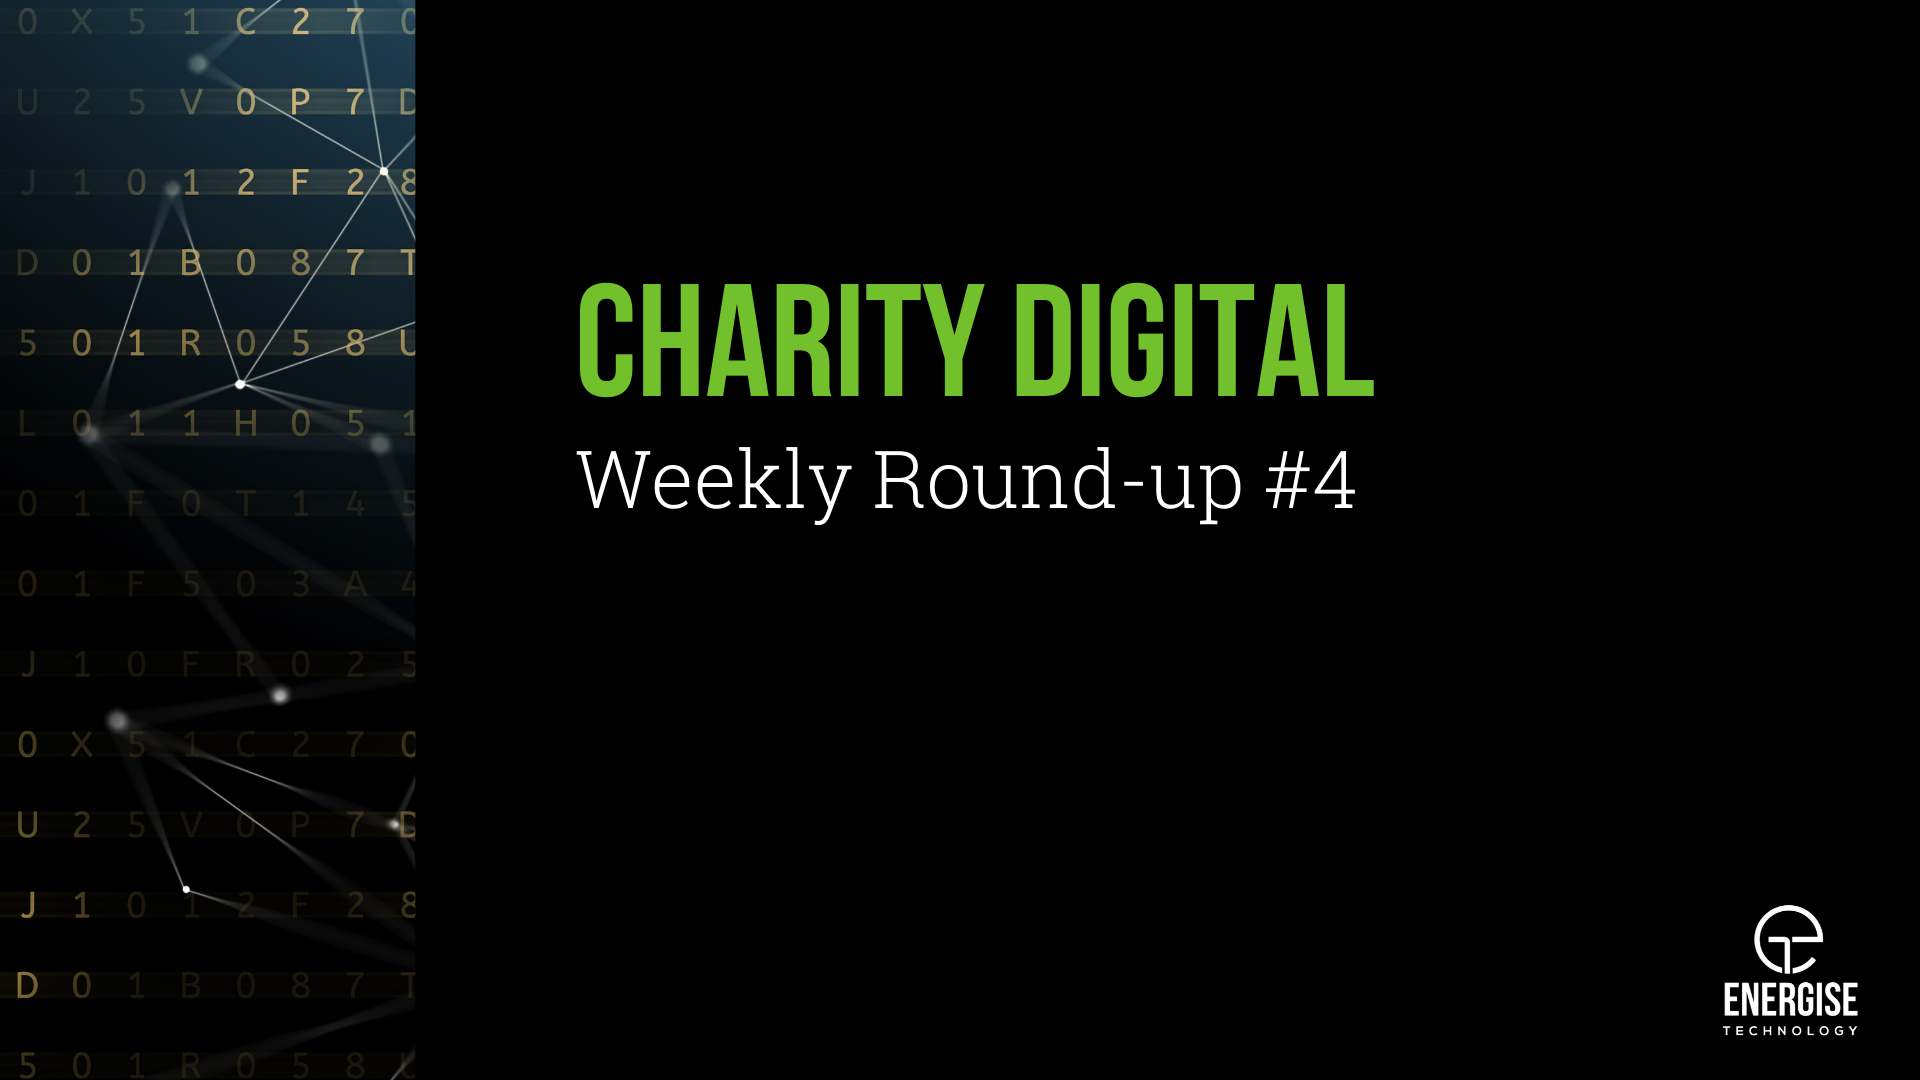 Charity Digital Weekly Roundup #4